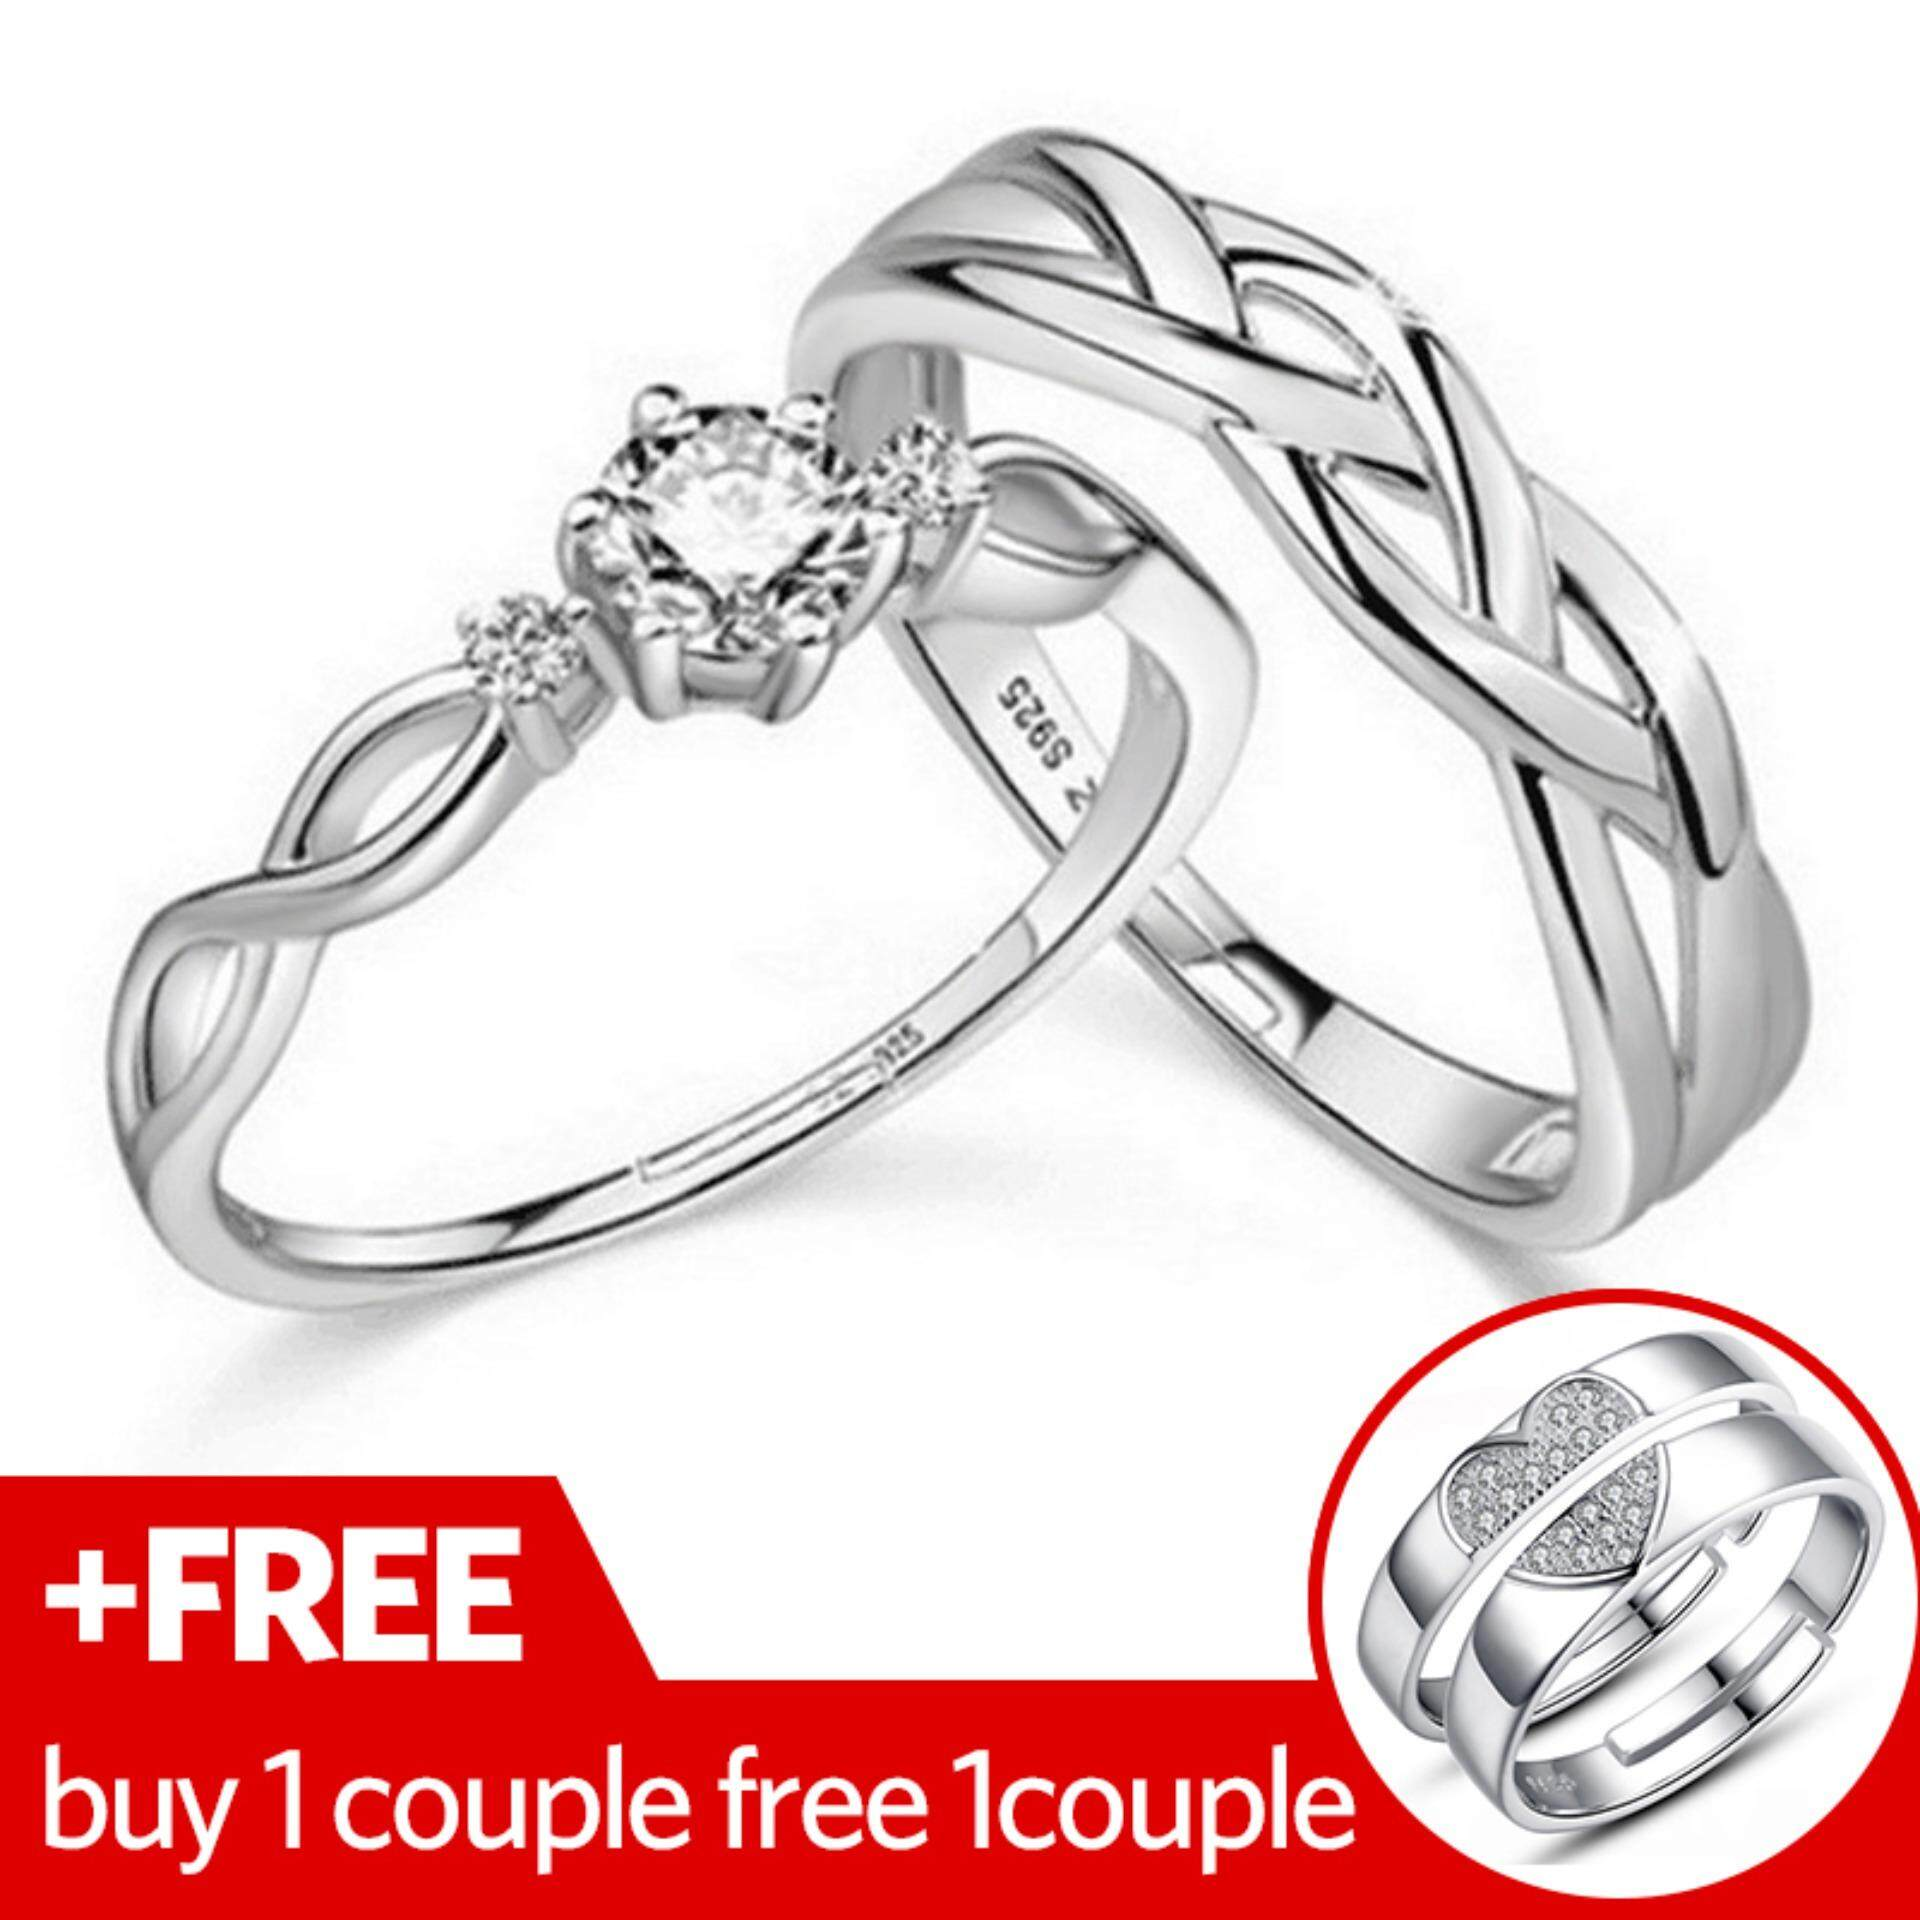 Hình thu nhỏ 2 Couple Adjustable Couple Rings 925 Silver Romentic Lover Ring Jewelry E028 [buy 1 couple free 1 couple] - intl